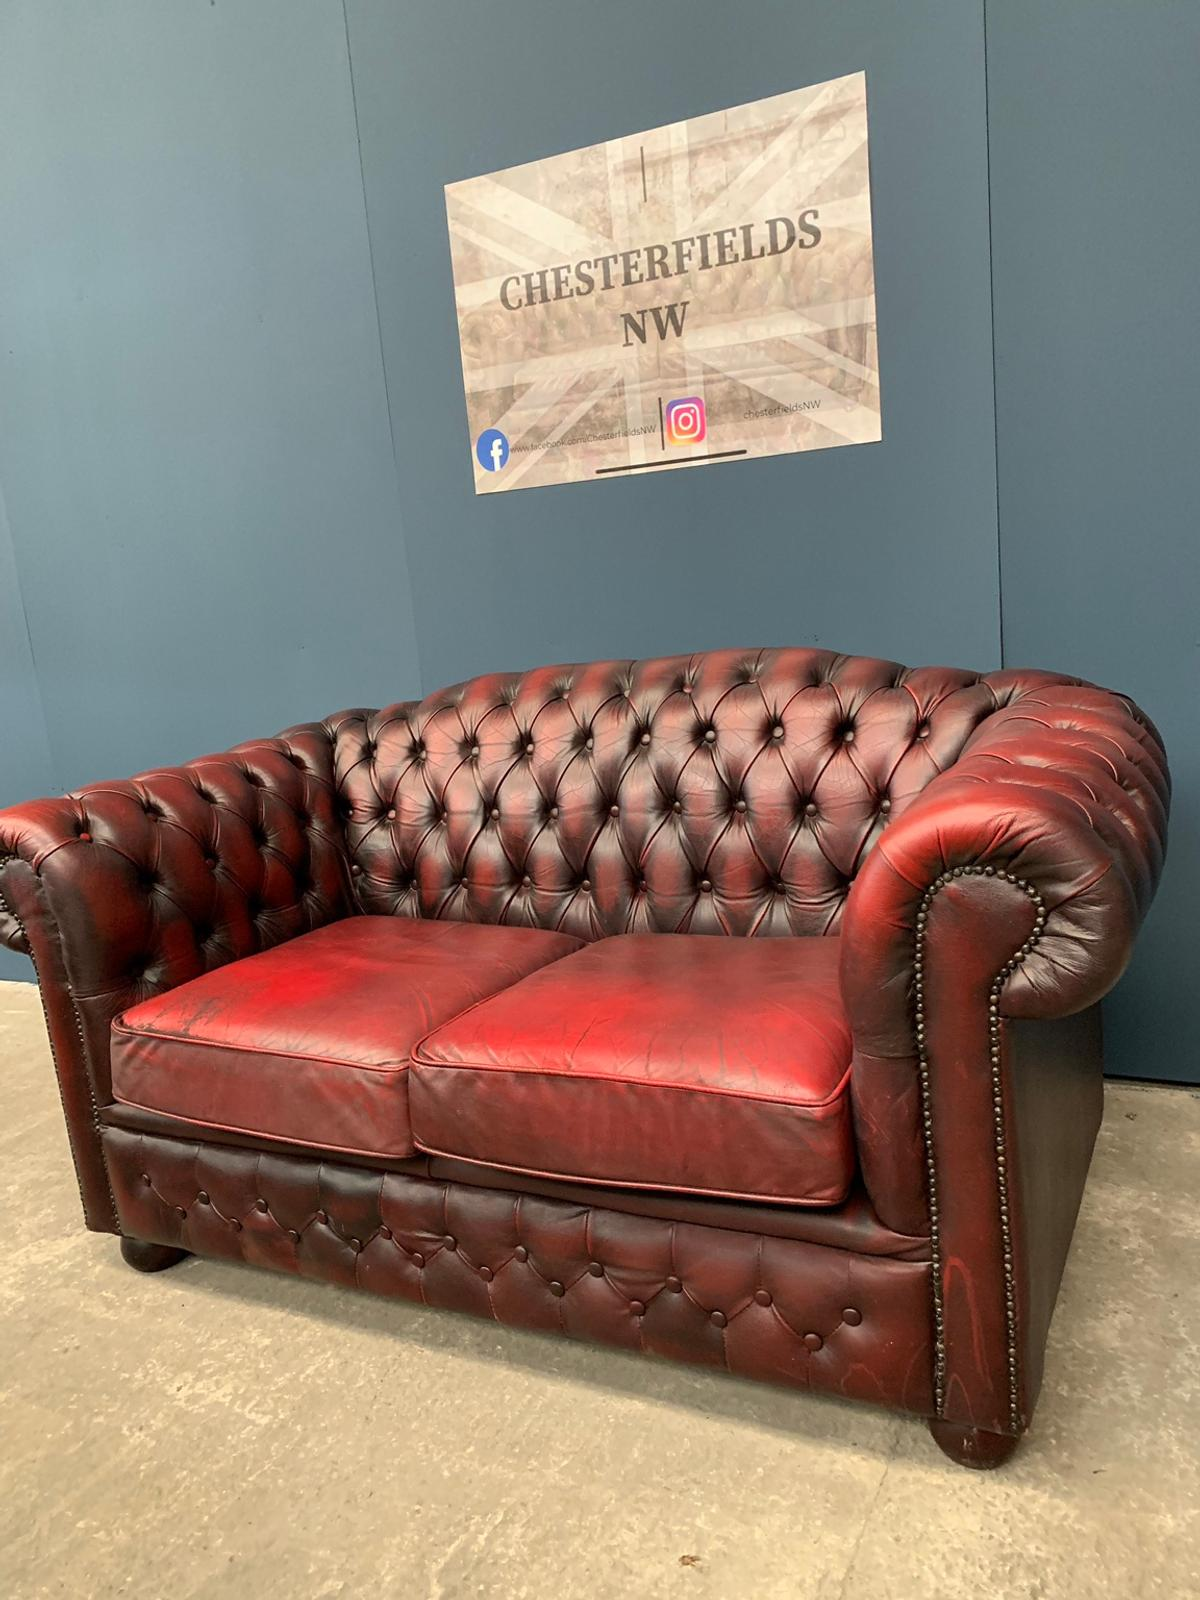 Picture of: Vintage Oxblood Chesterfield Sofa In Wa3 Glazebury For 295 00 For Sale Shpock